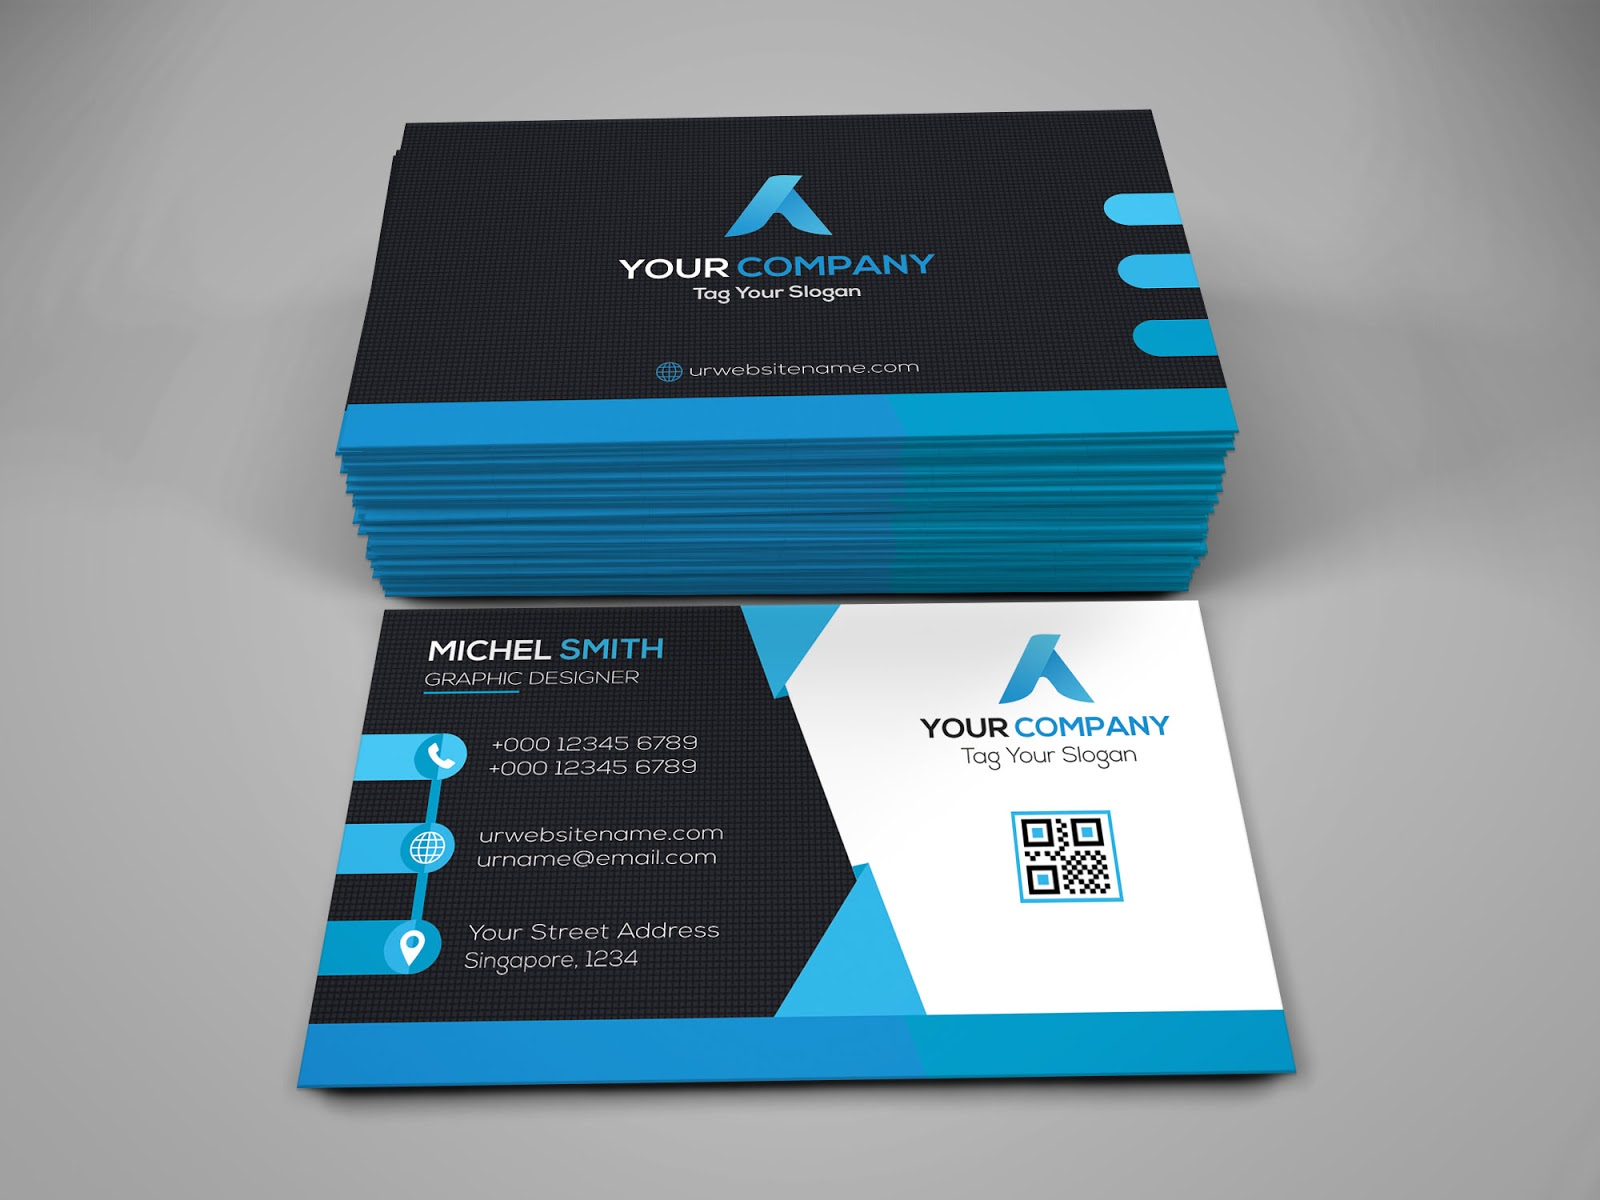 50+ Best Free High-Quality PSD Business Card Mockups | Top 50 Free ...